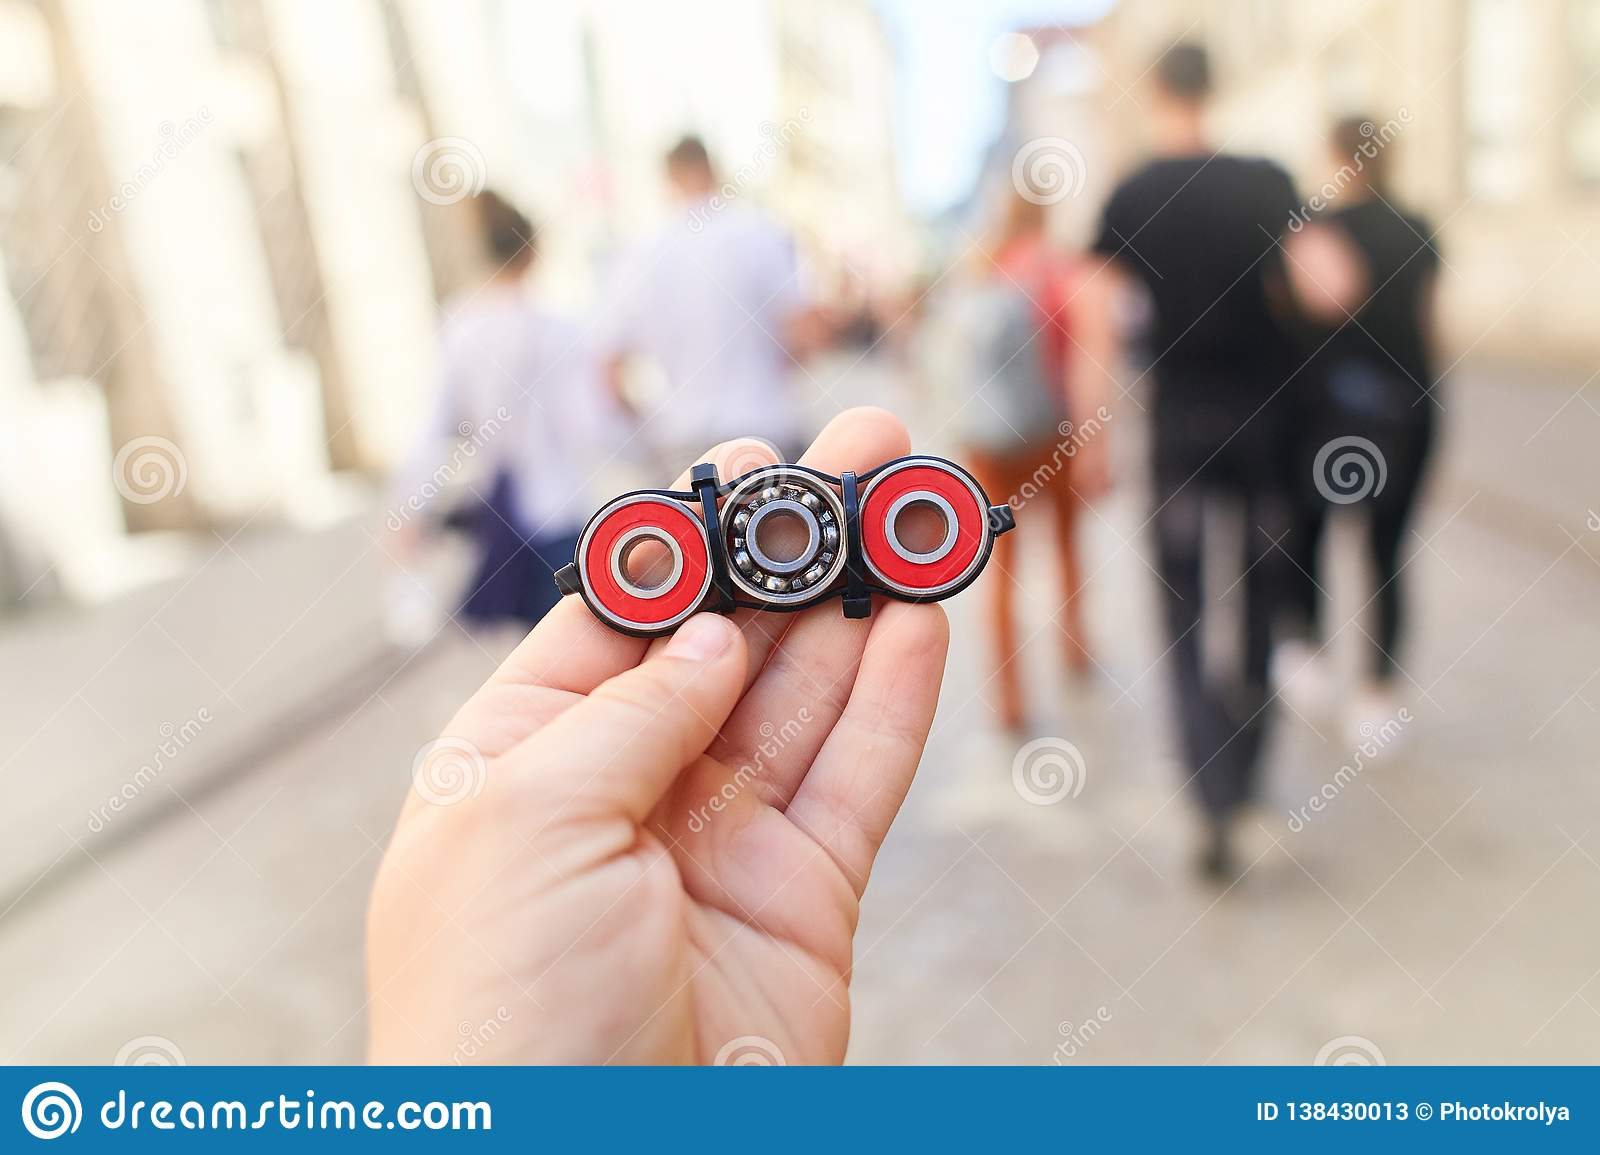 . Child holding unusual metal spinner at blurry people in the street background.